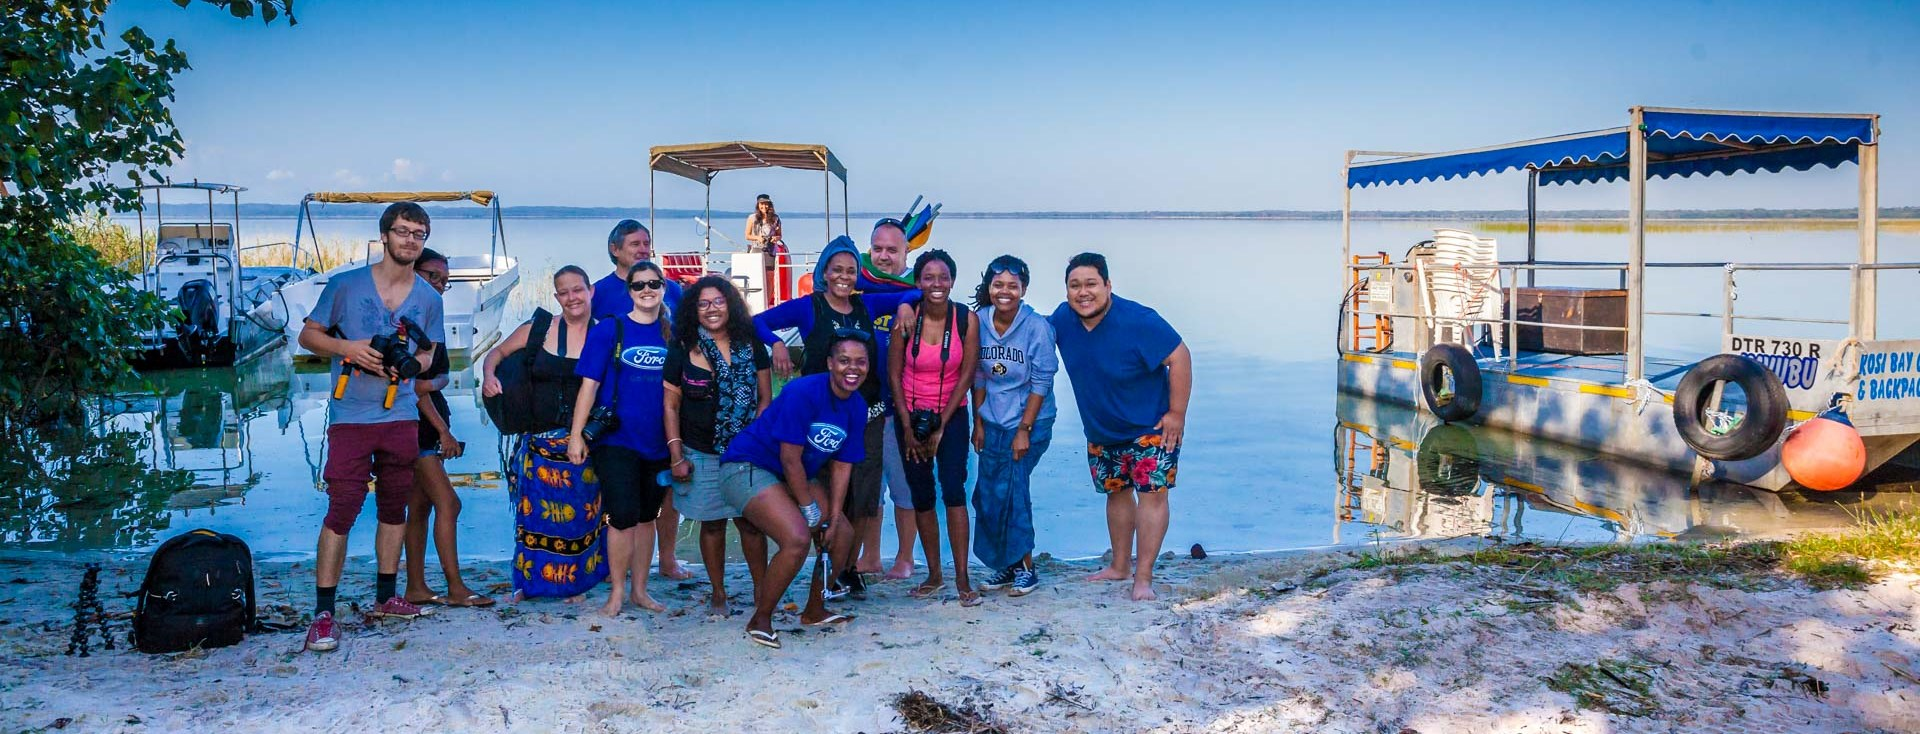 African Travel Crew Pic Justin Lee